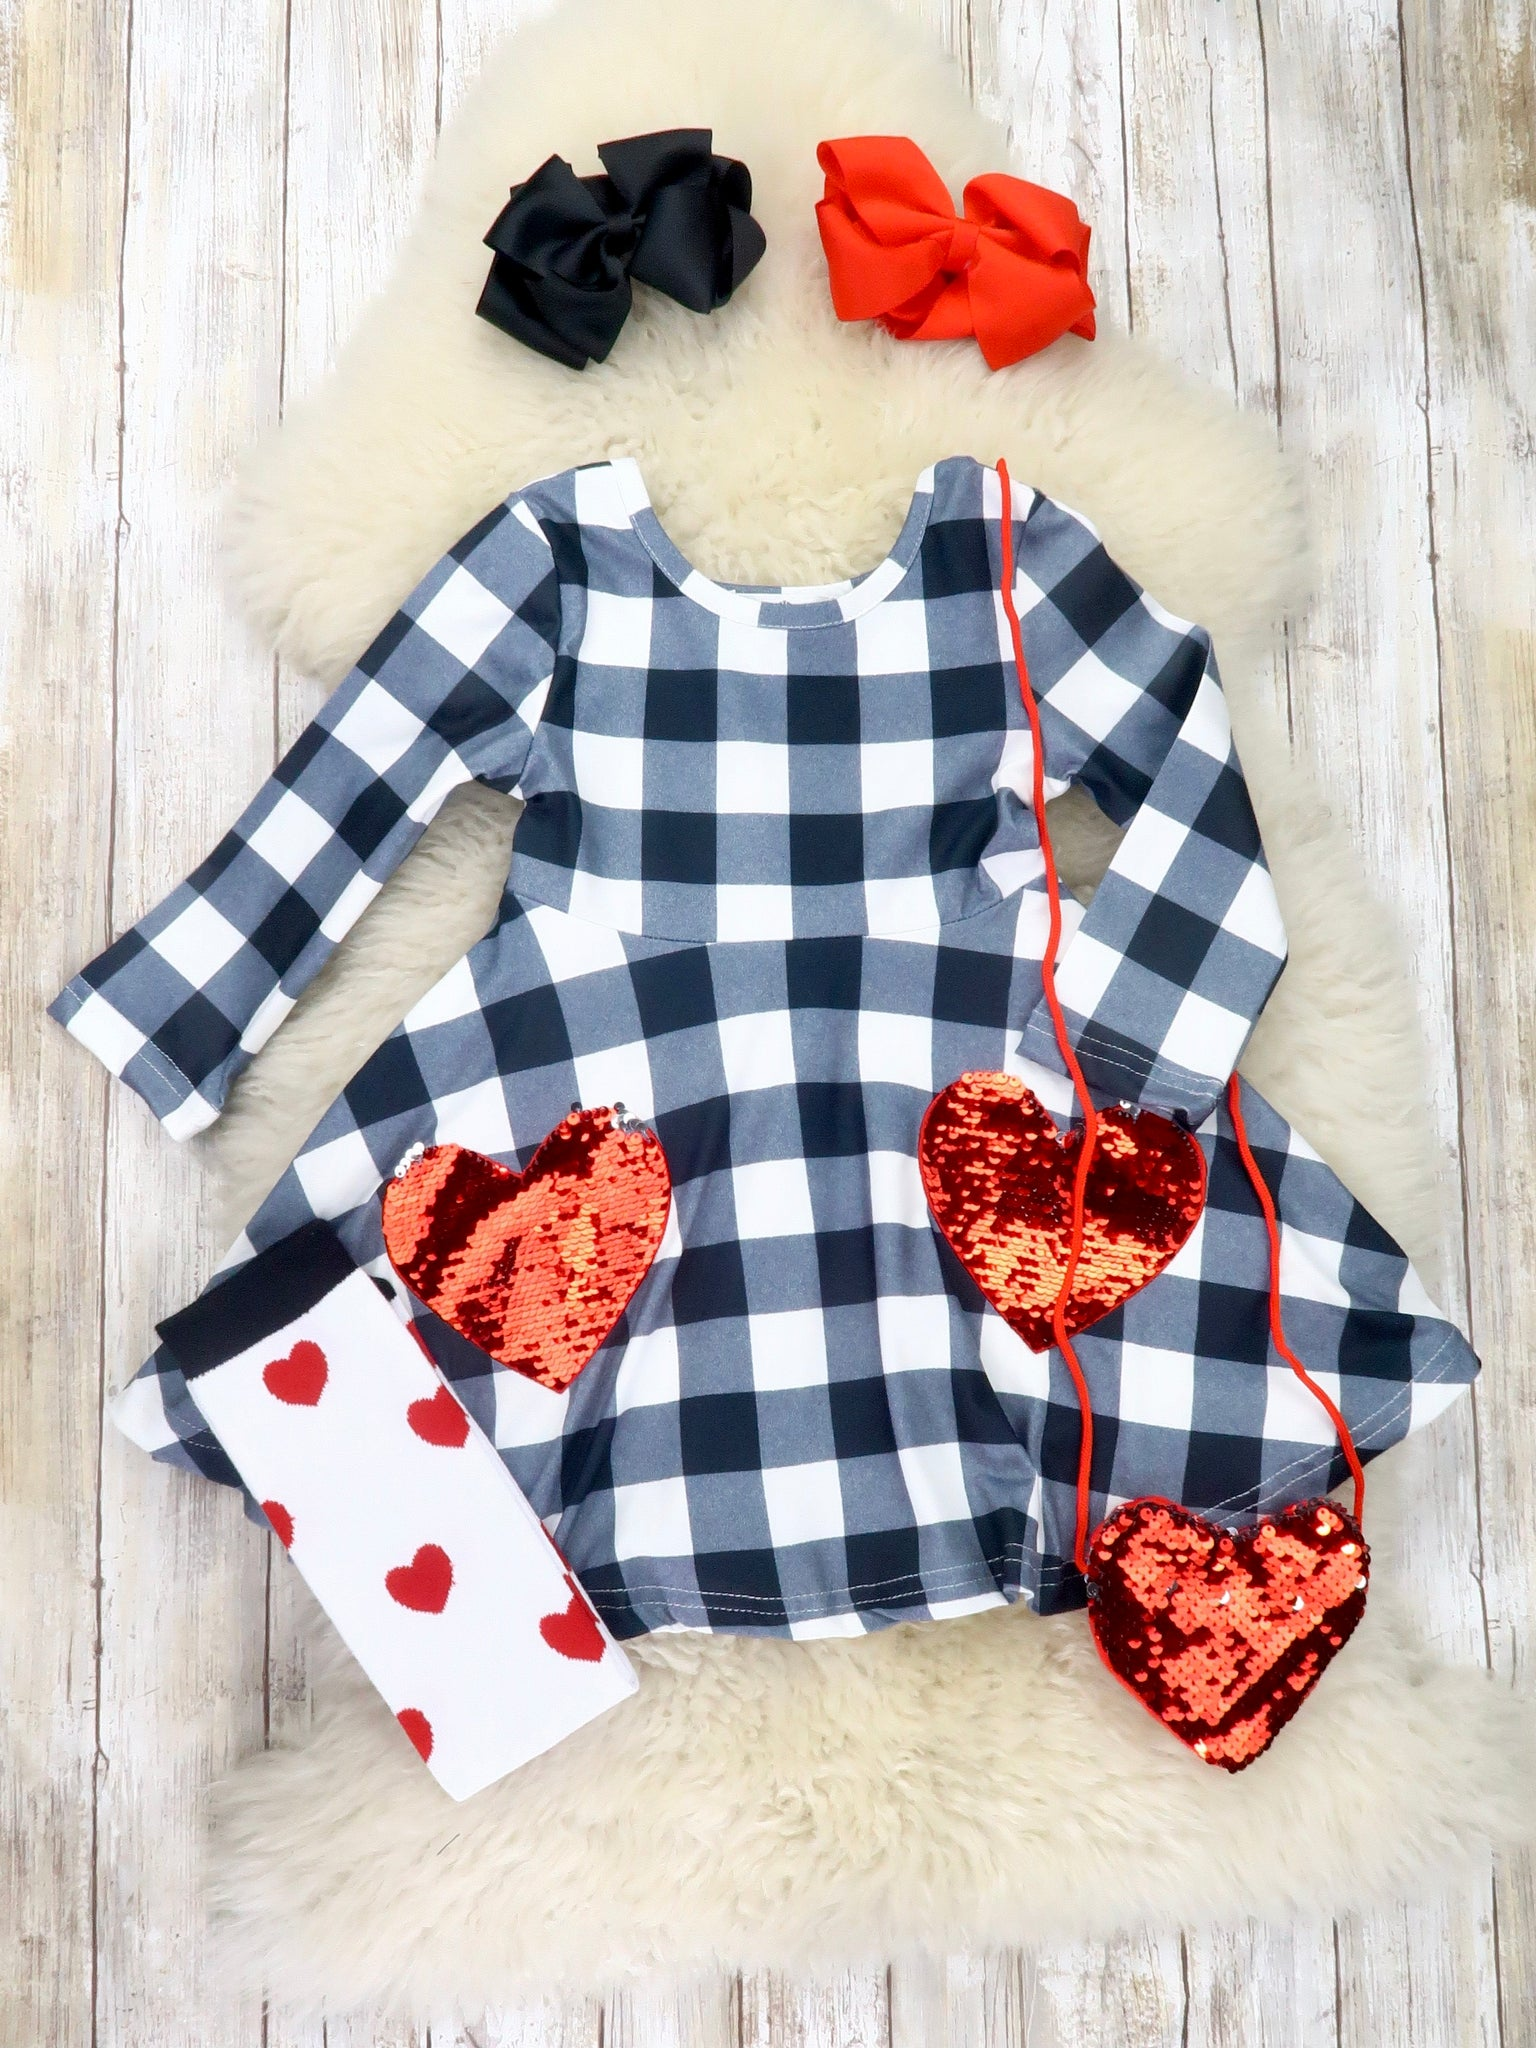 Black / White Checkered Hearts Dress, Purse, & Socks Outfit